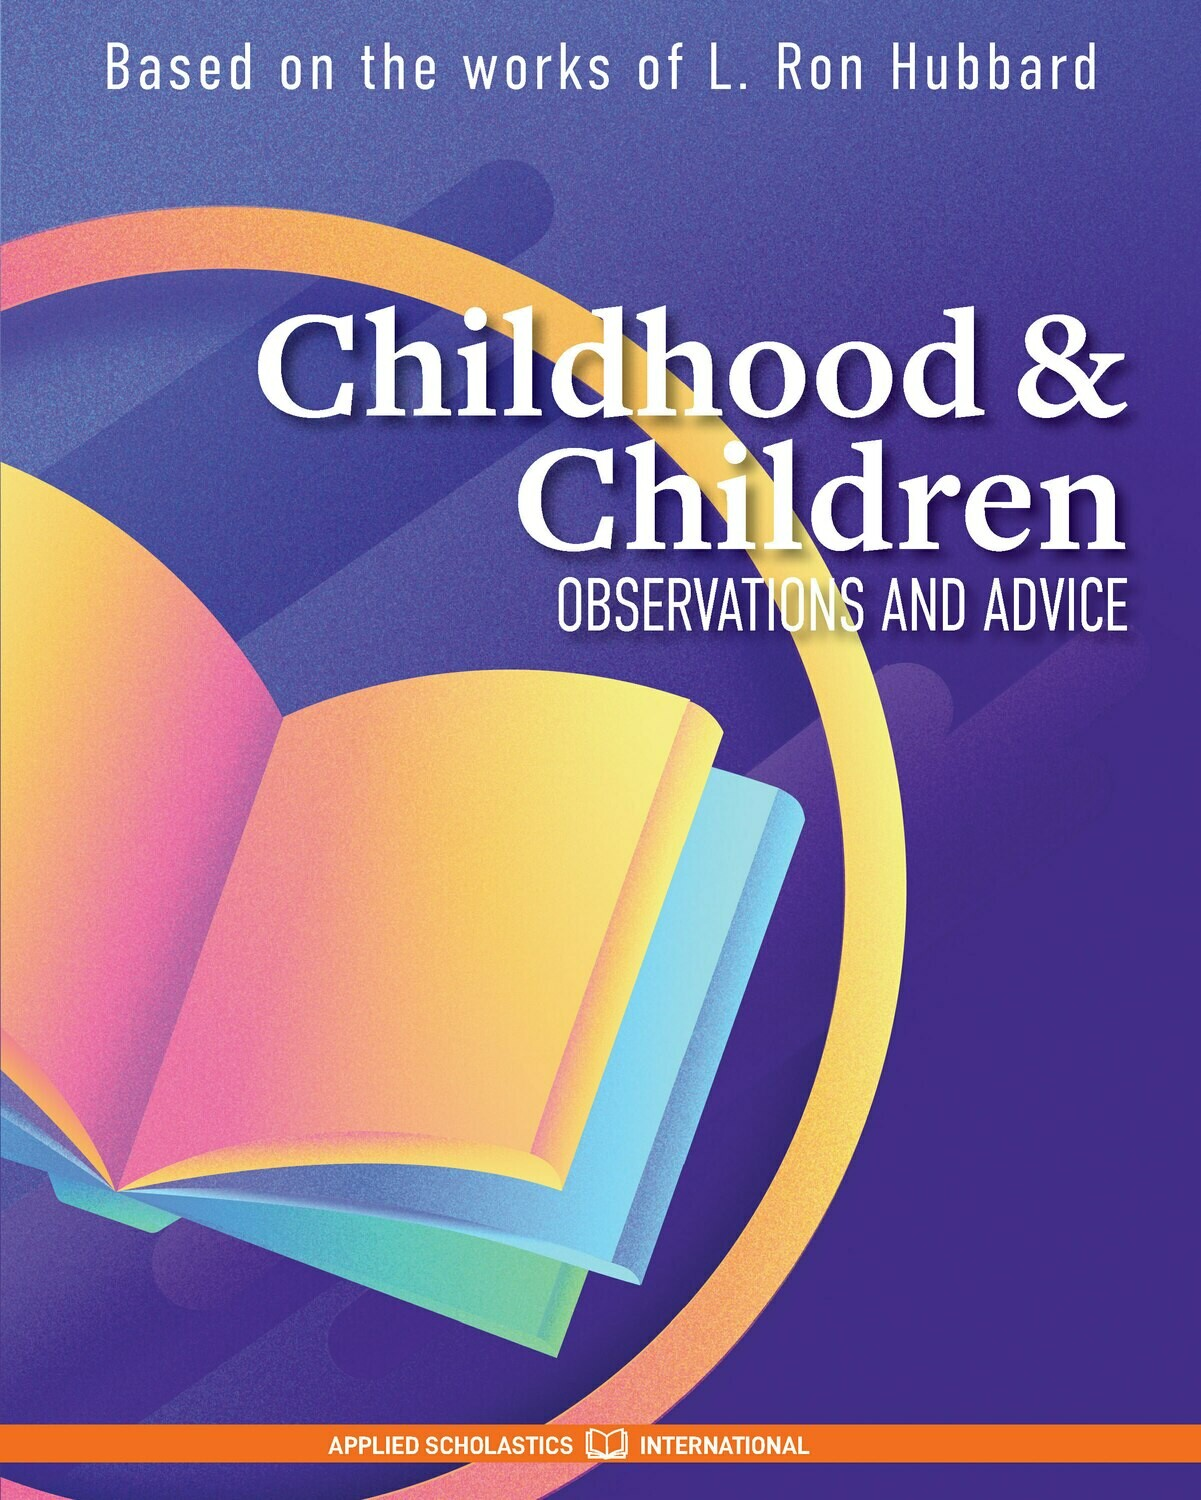 Childhood & Children - Observations and Advice